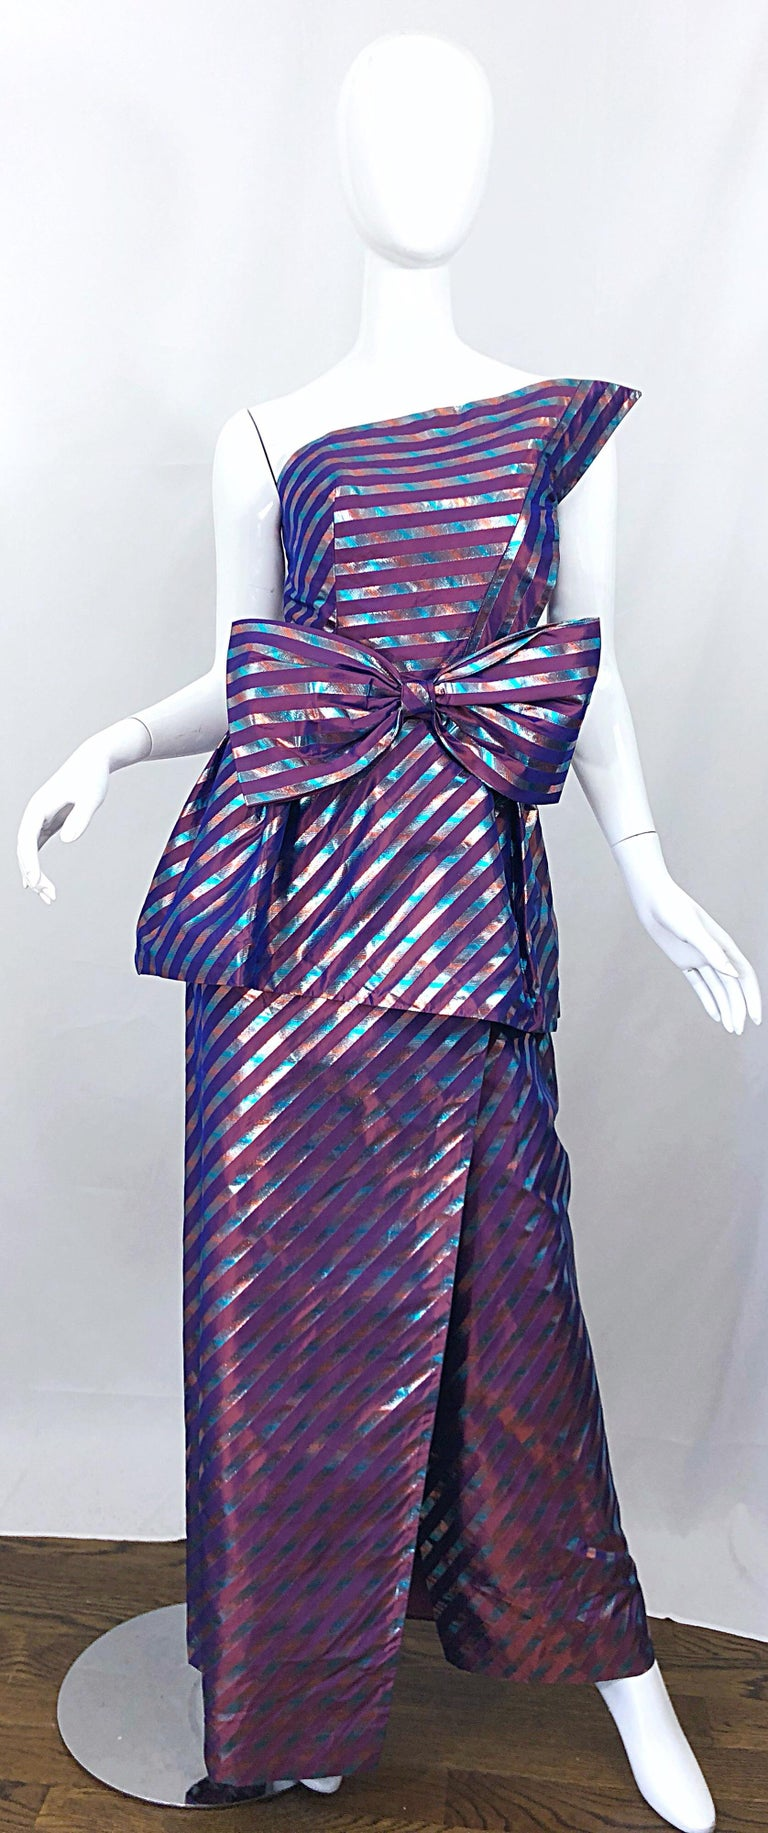 Beautiful 1980s RUBEN PANIS Couture for Eilzabeth Arden Avant Garde one shoulder metallic silk striped purple gown, with detachable bow belt! Beautiful iridescent purple, mixed with blue and pink flattering diagonal stripes throughout. Hidden zipper